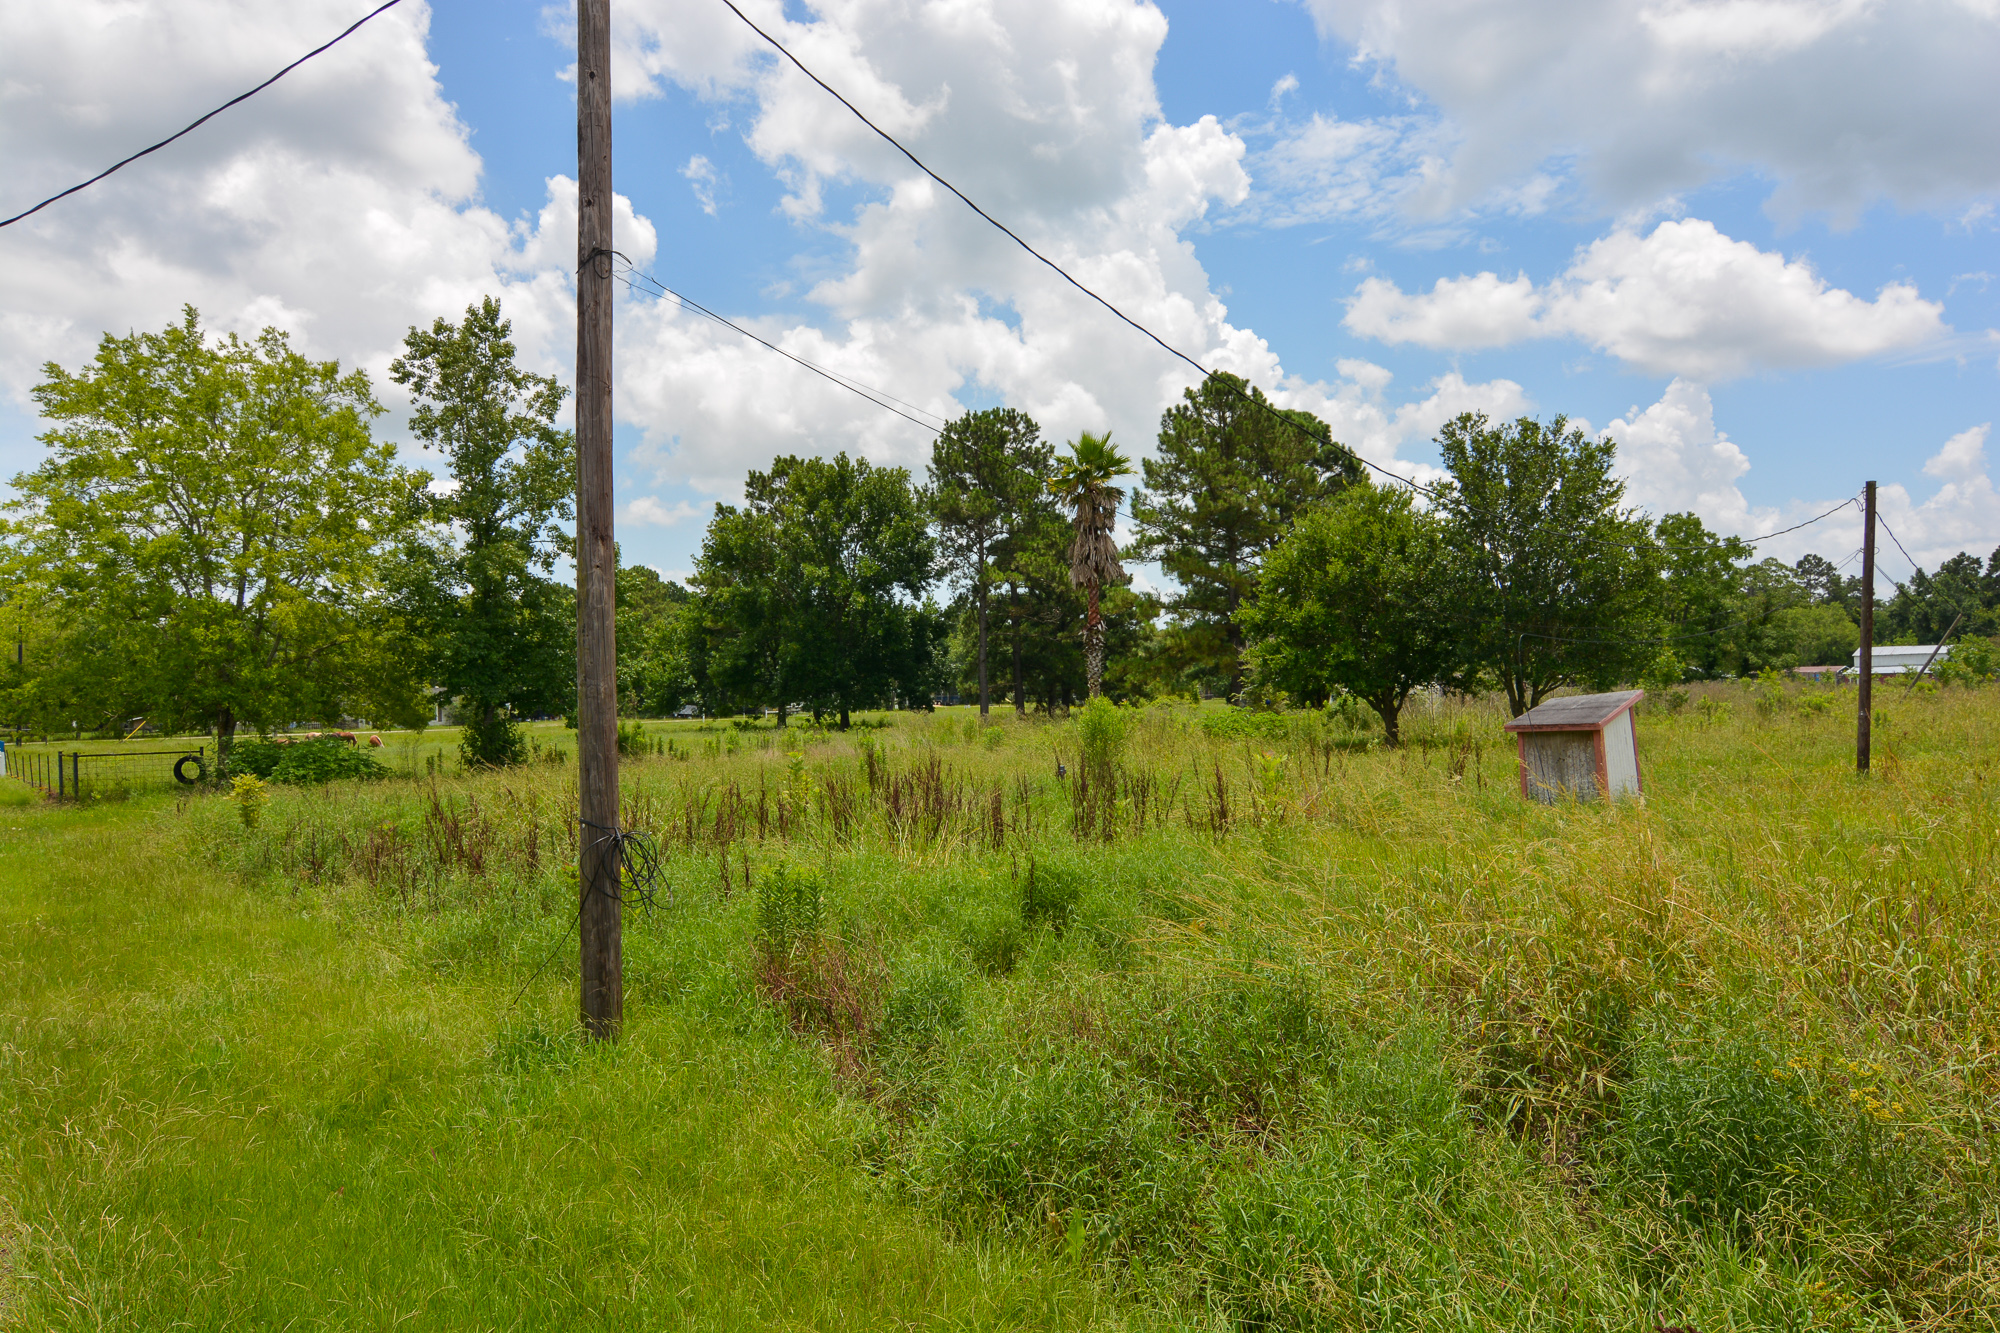 5002 Dairy Oaks Rd, Crosby, Texas 77532, ,Country homes/acreage,For Sale,Dairy Oaks Rd,108629923